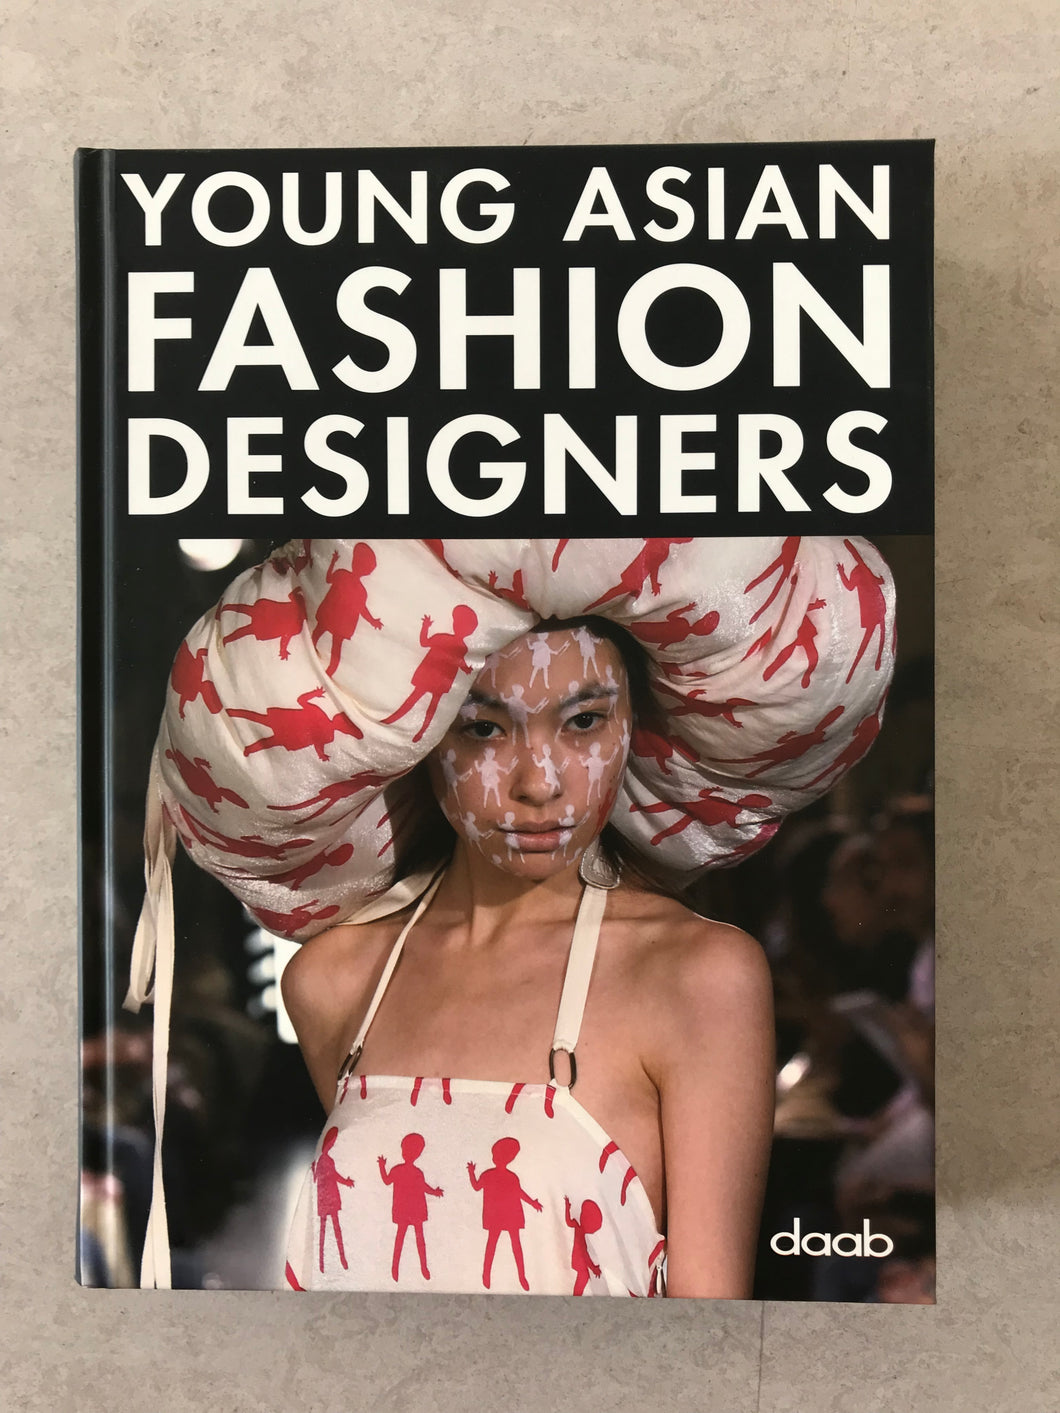 YOUNG ASIAN FASHION DESIGNERS